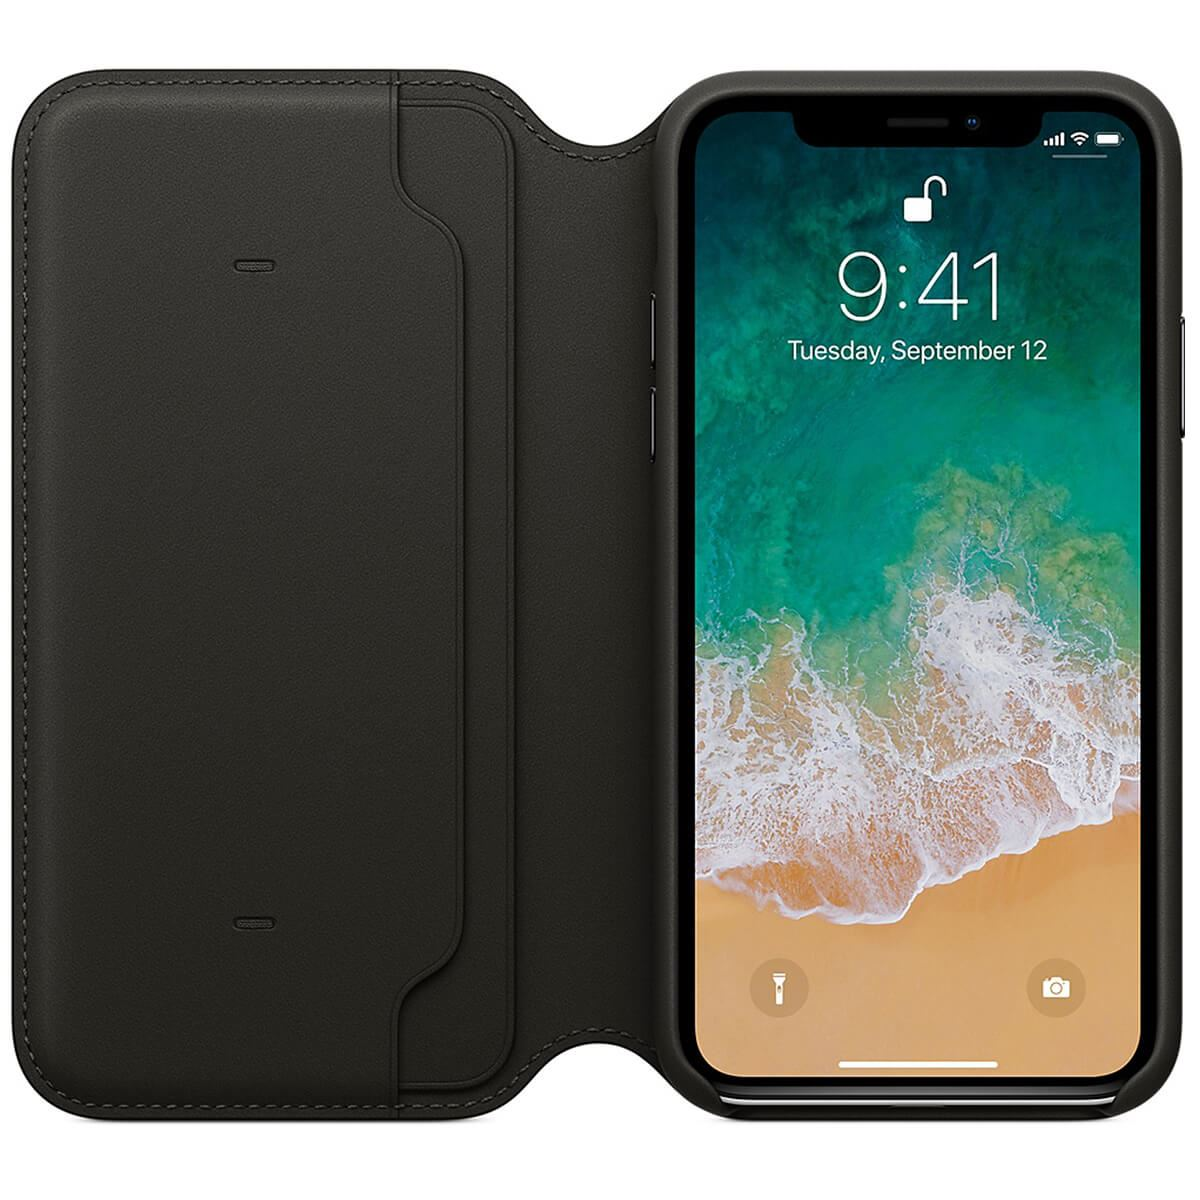 Genuine-Leather-Folio-Flip-Wallet-Case-Cover-For-Apple-iPhone-X-8-7-6S-6-Plus thumbnail 5